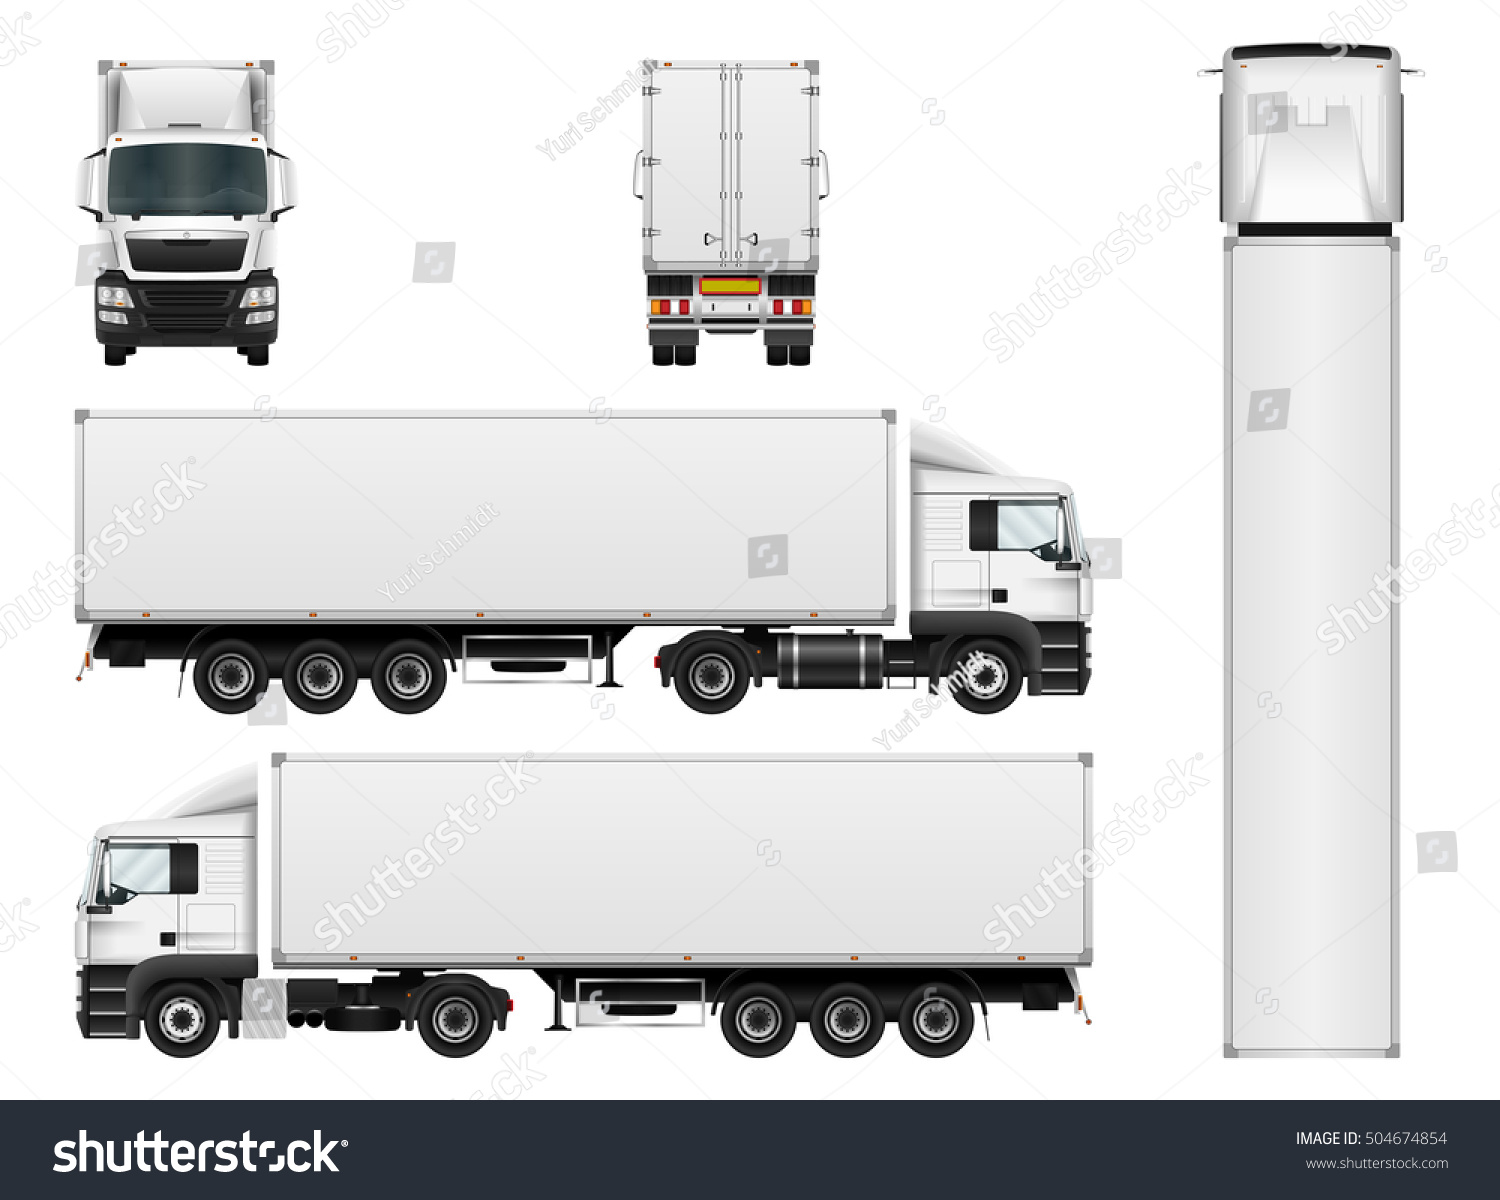 Utility Trailer Vector At Free For Personal Use Wells Cargo Wiring Diagram 1500x1200 19 Images Of Template